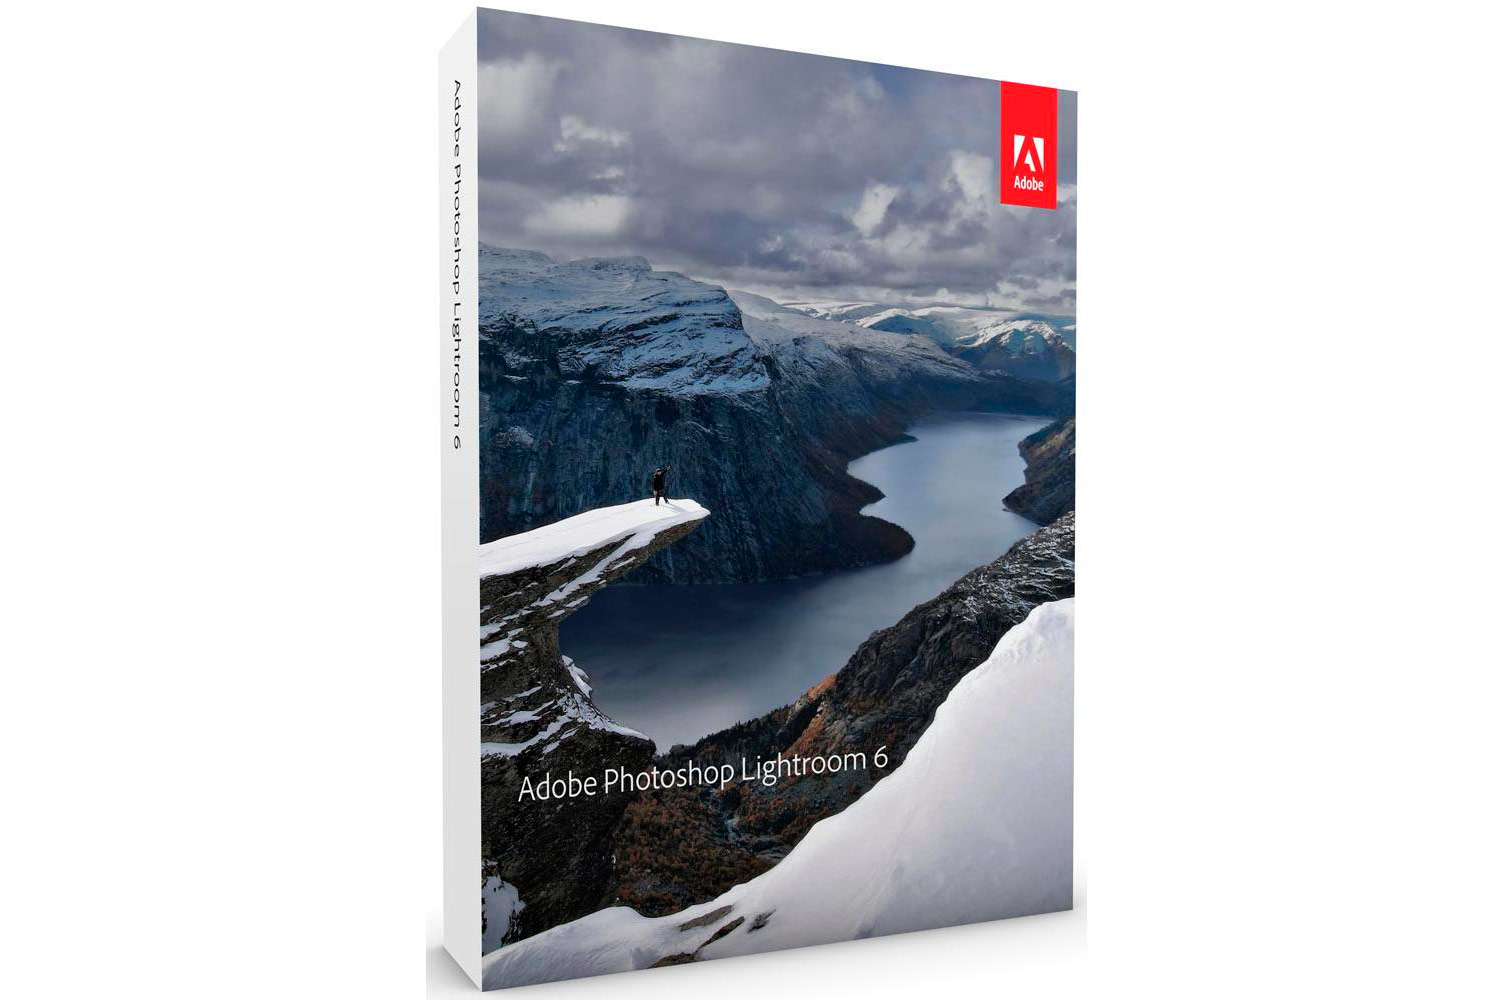 adobe light room 6